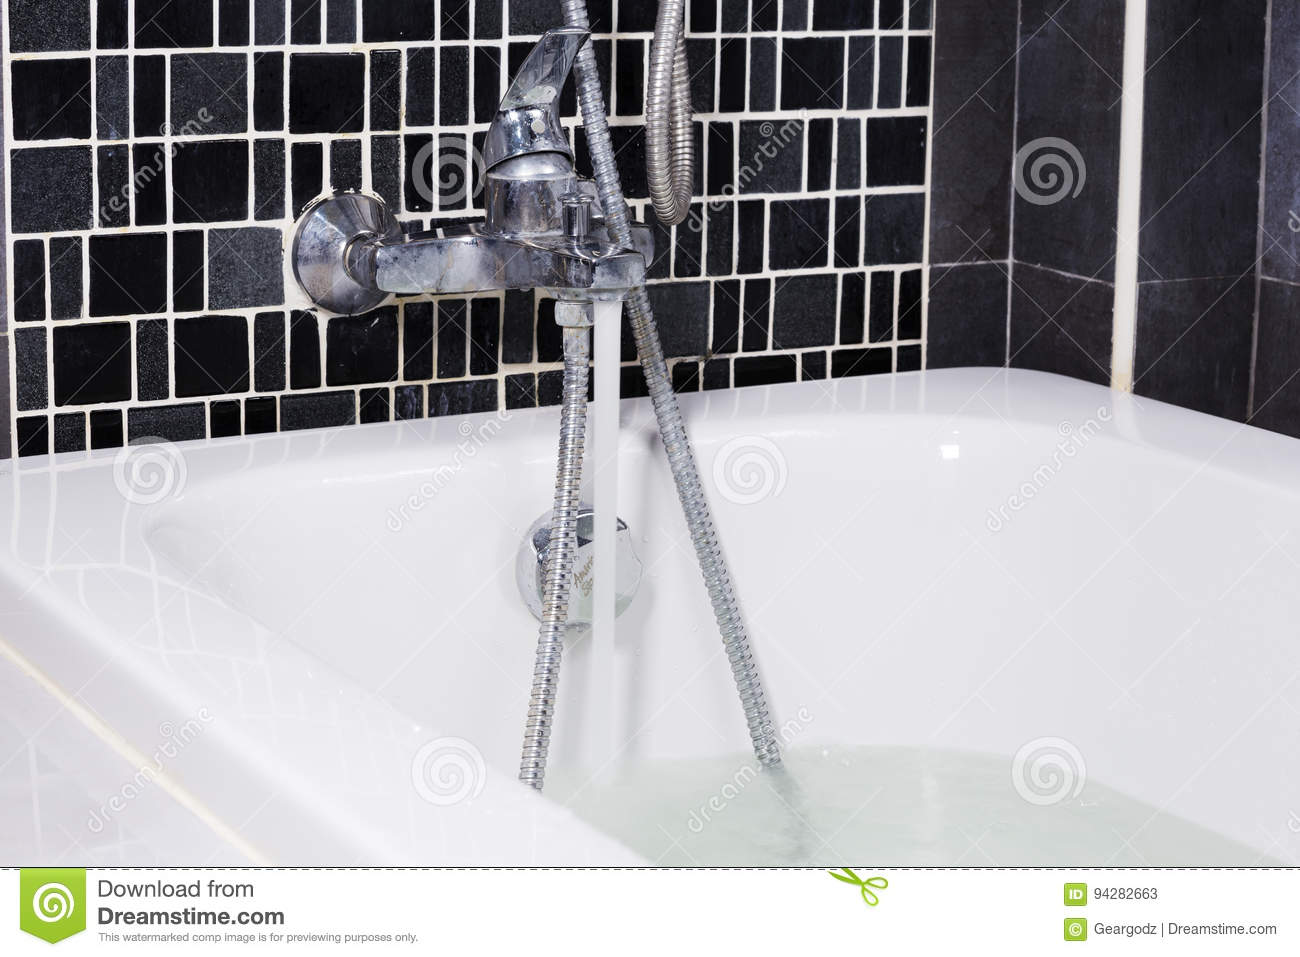 Open Water From Faucet To Bathtub In Bathroom Stock Image - Image of ...